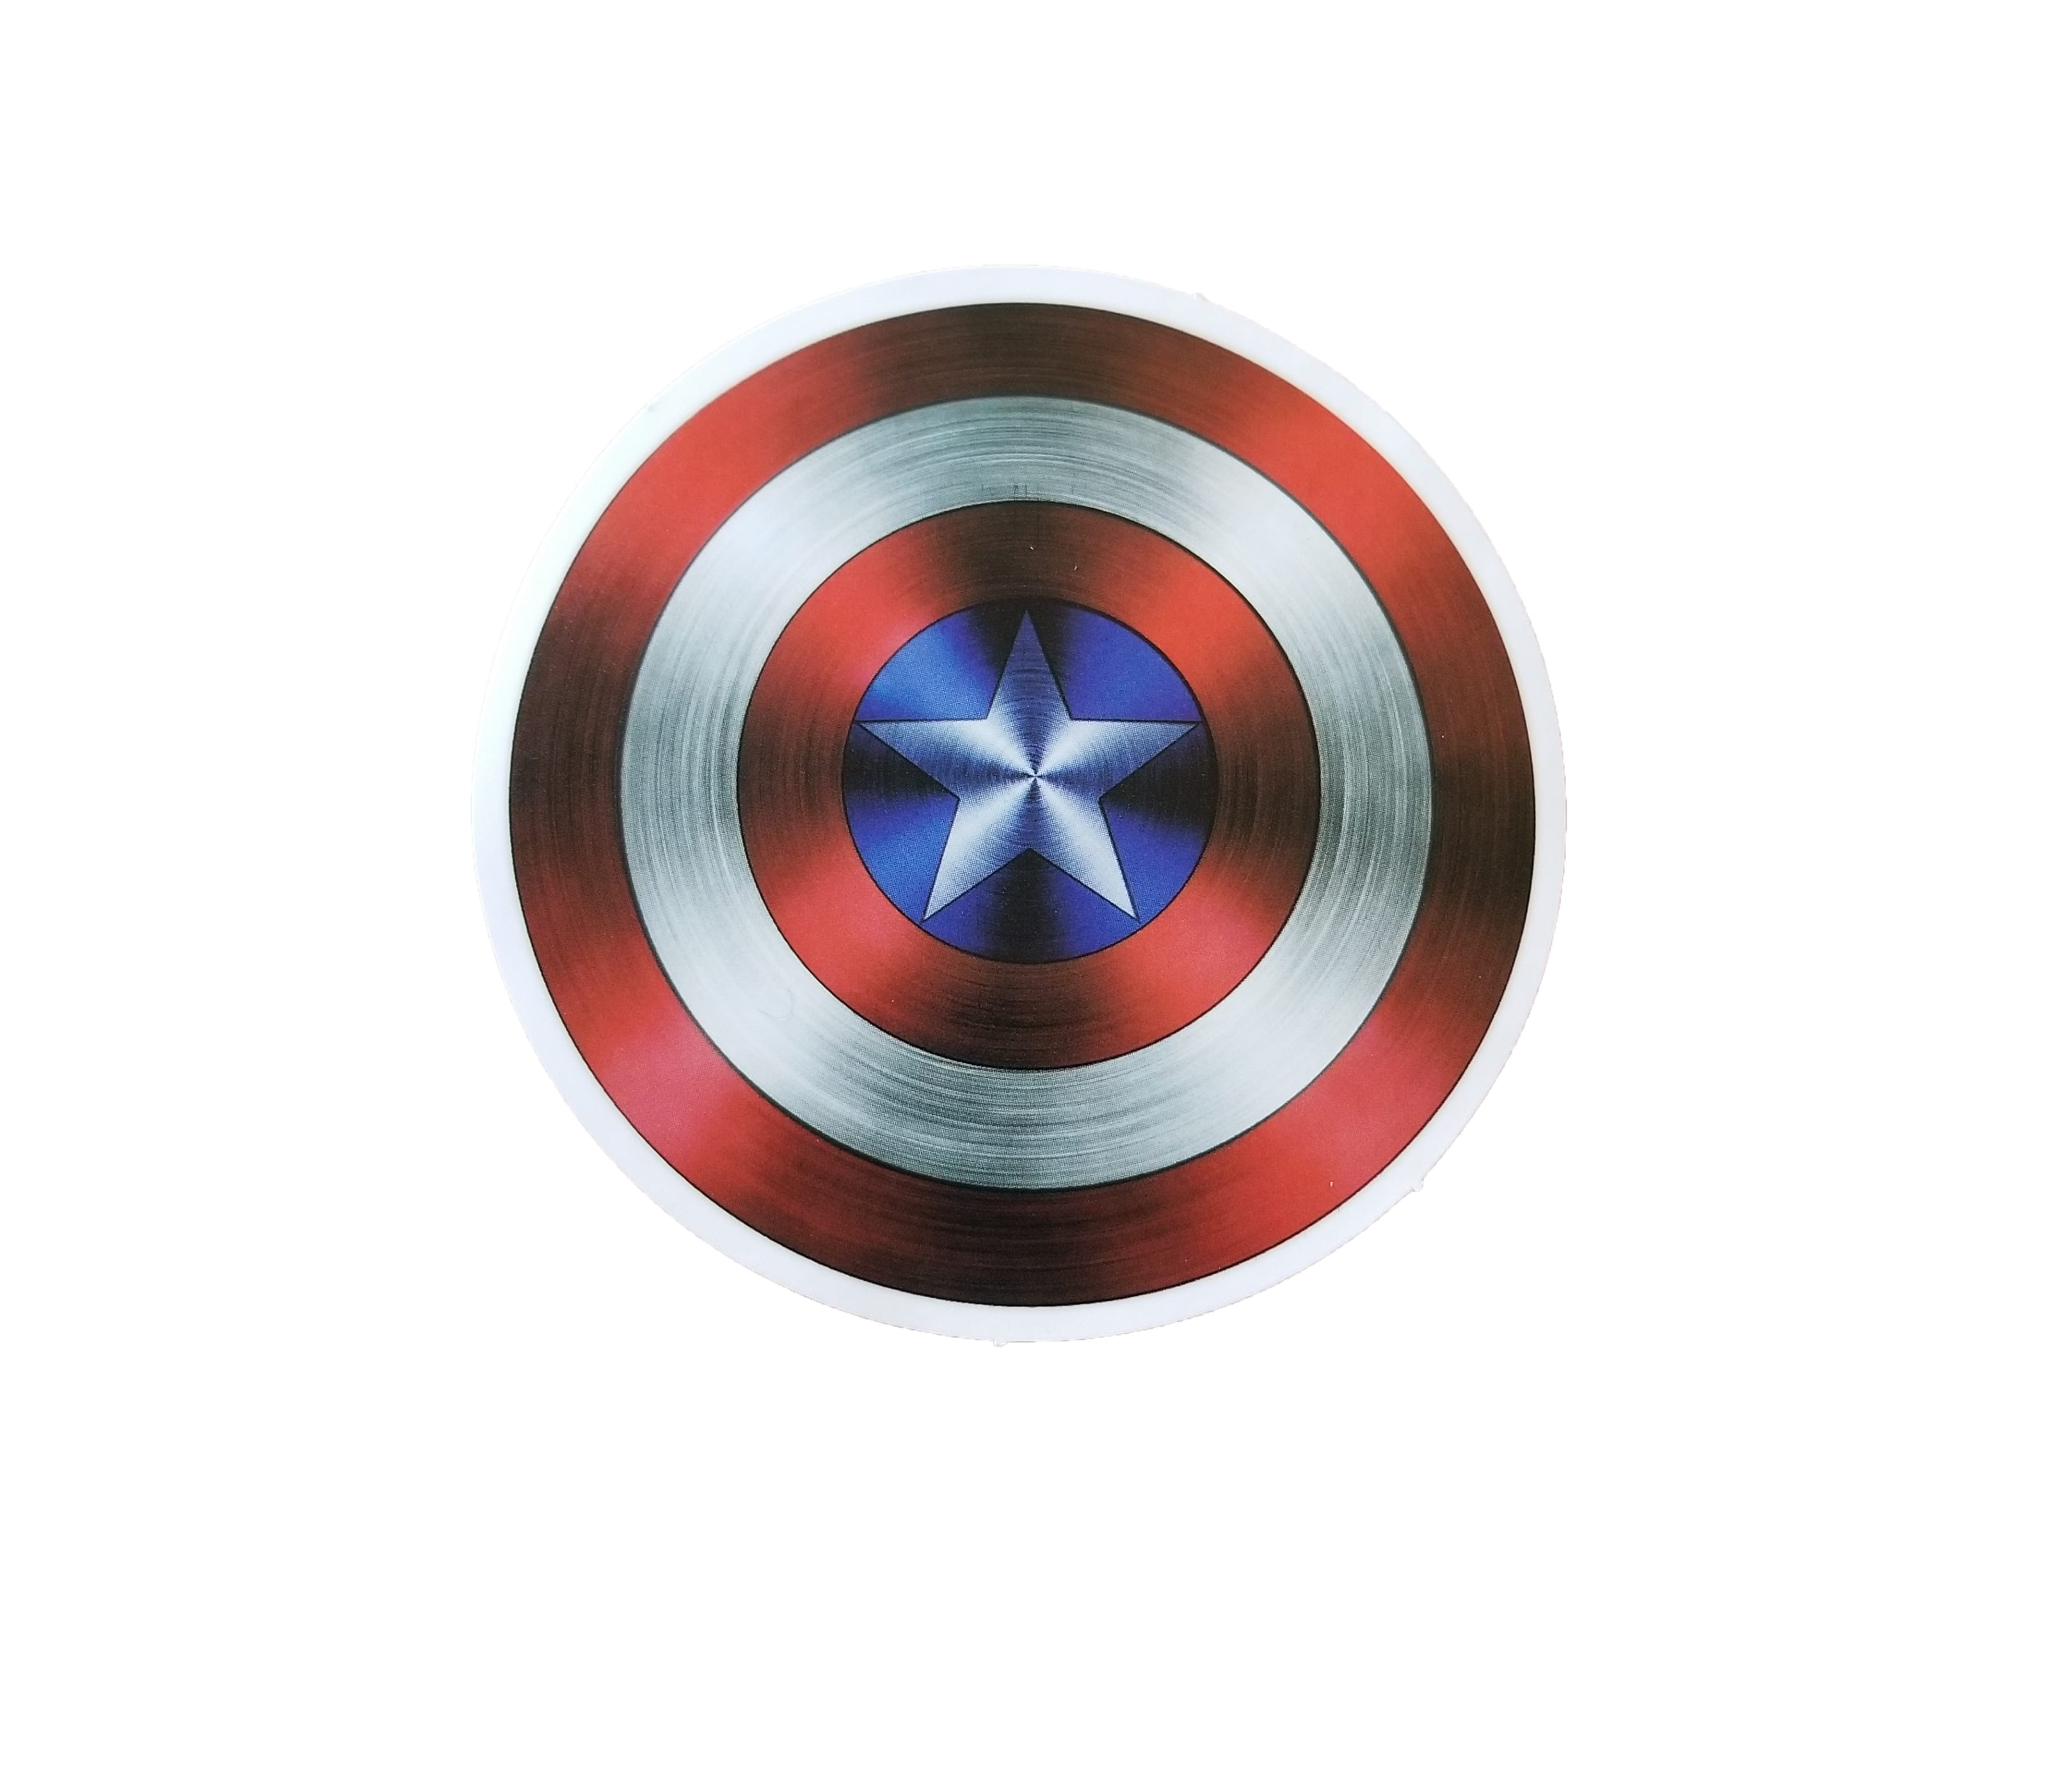 captain americas shield. A cool depictions of the captains shield